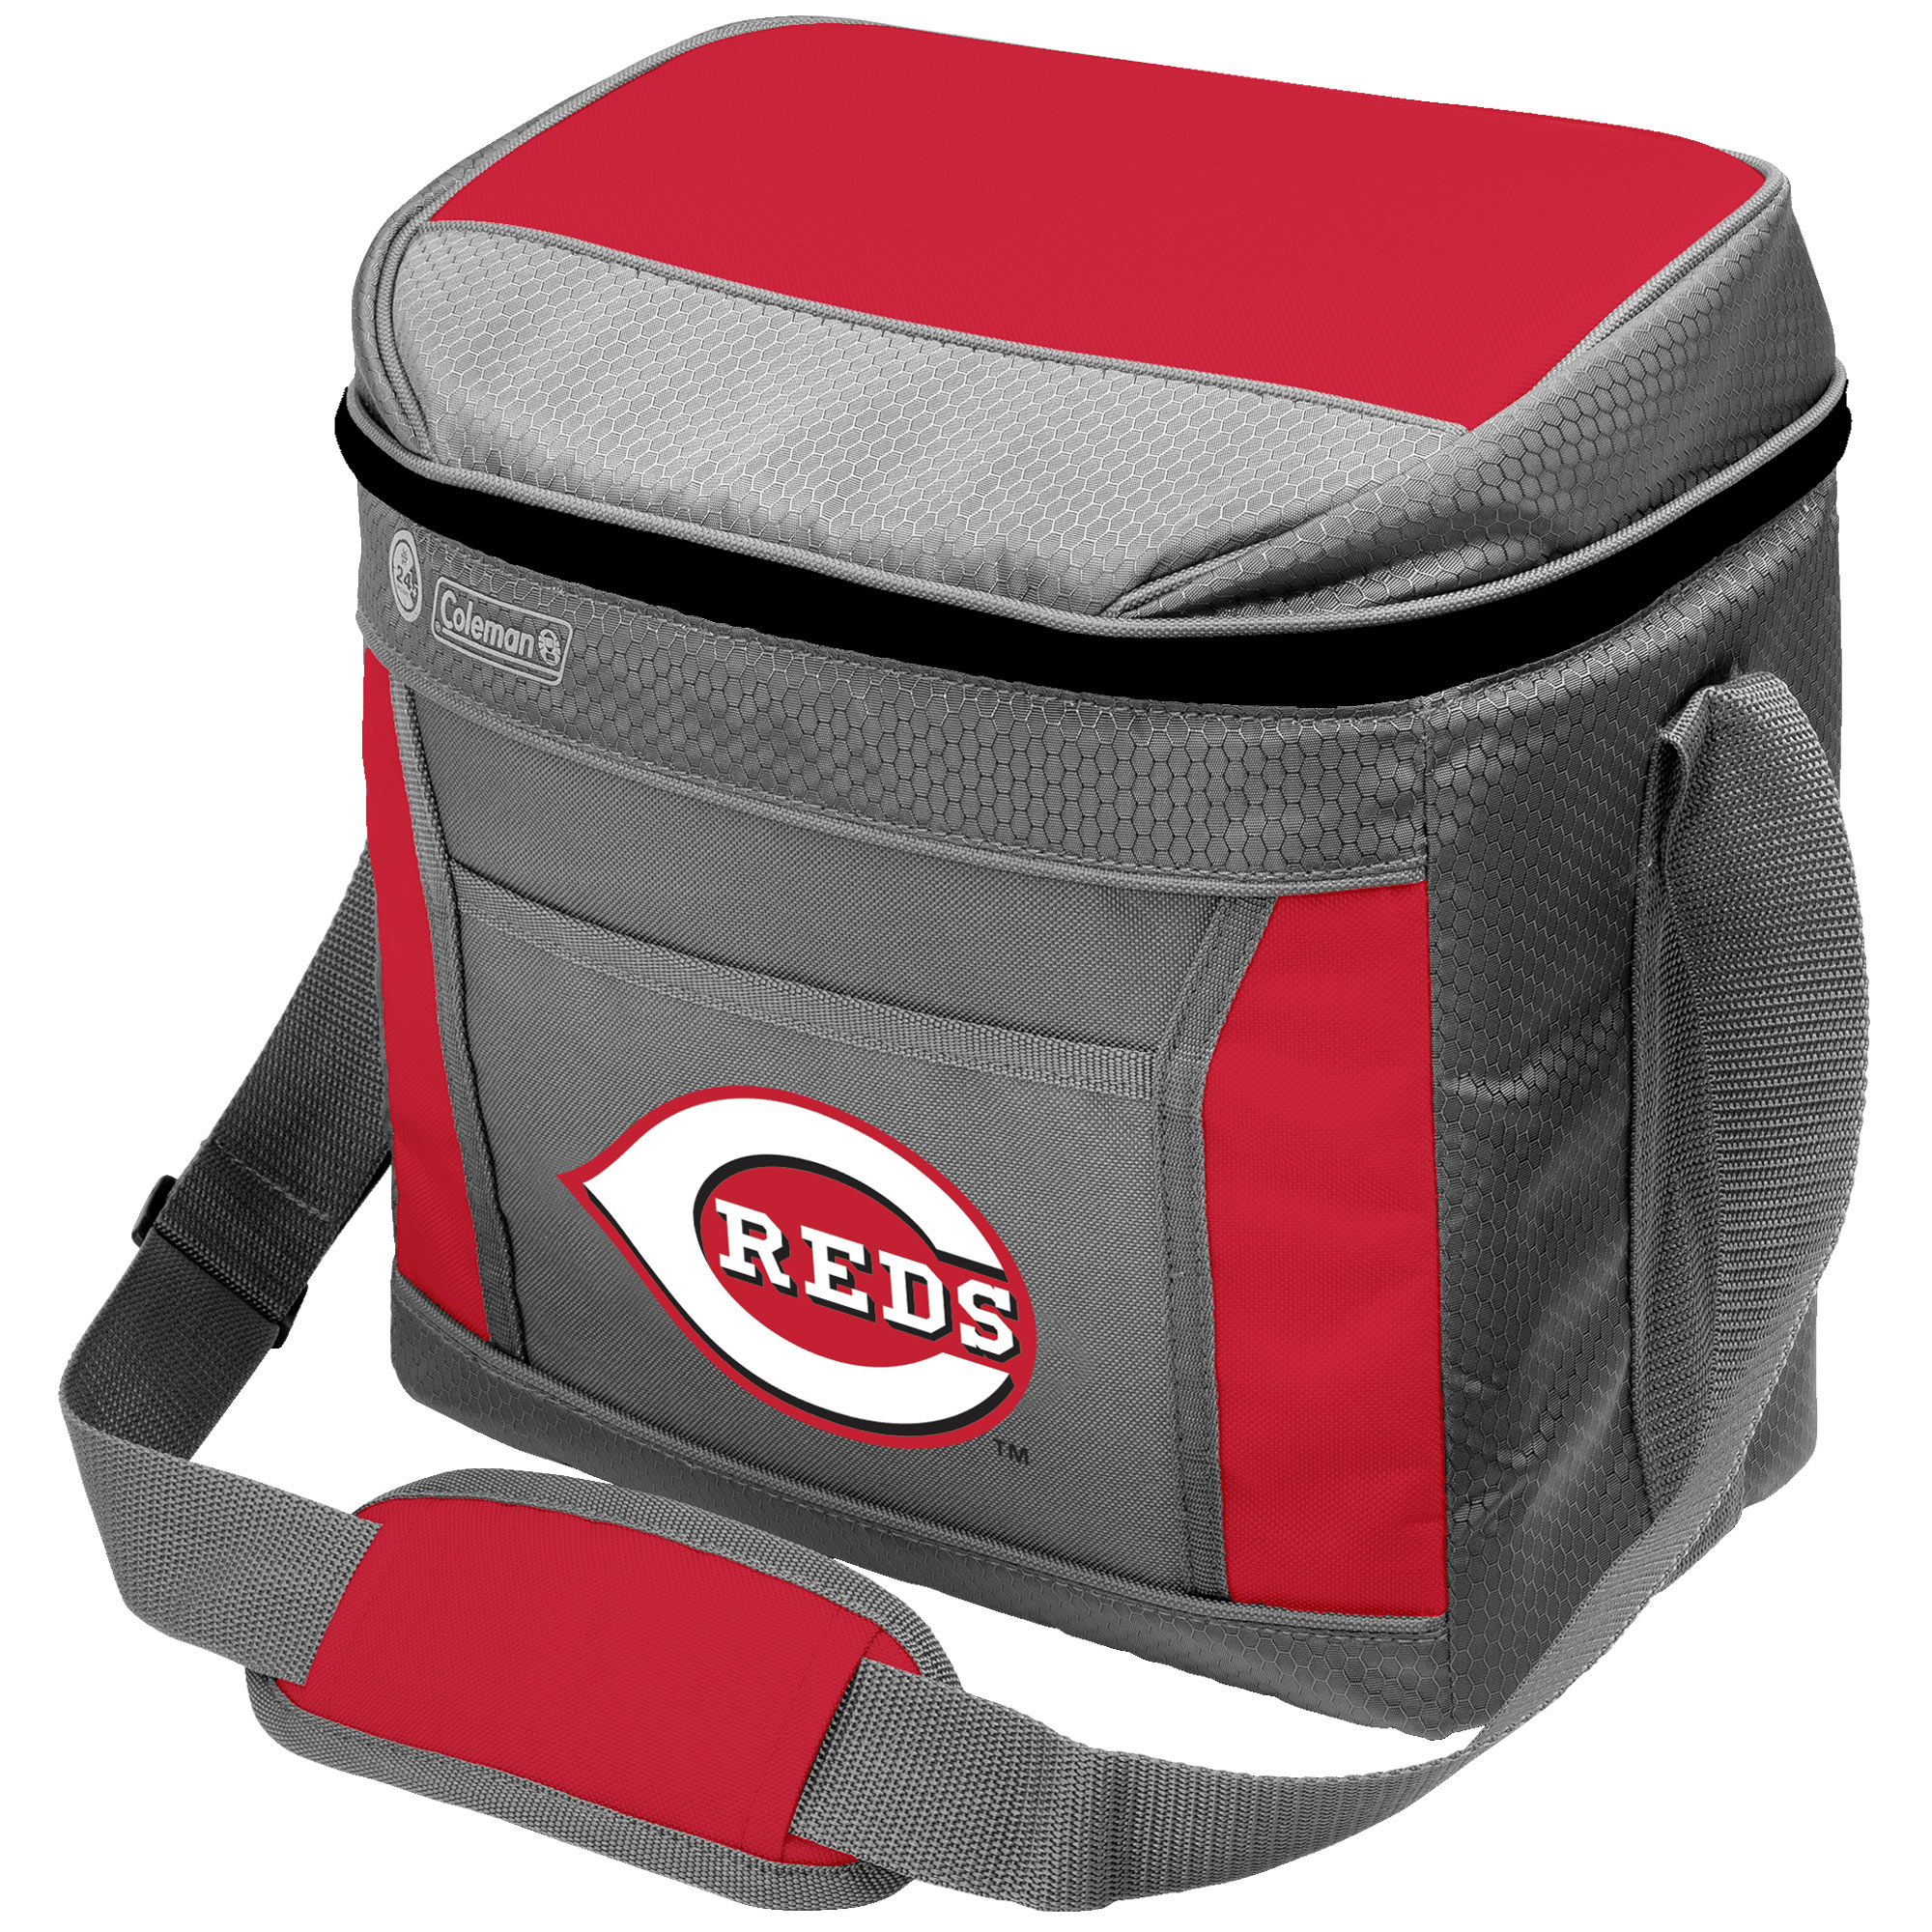 Cincinnati Reds Coleman 16-Can 24-Hour Soft-Sided Cooler - No Size